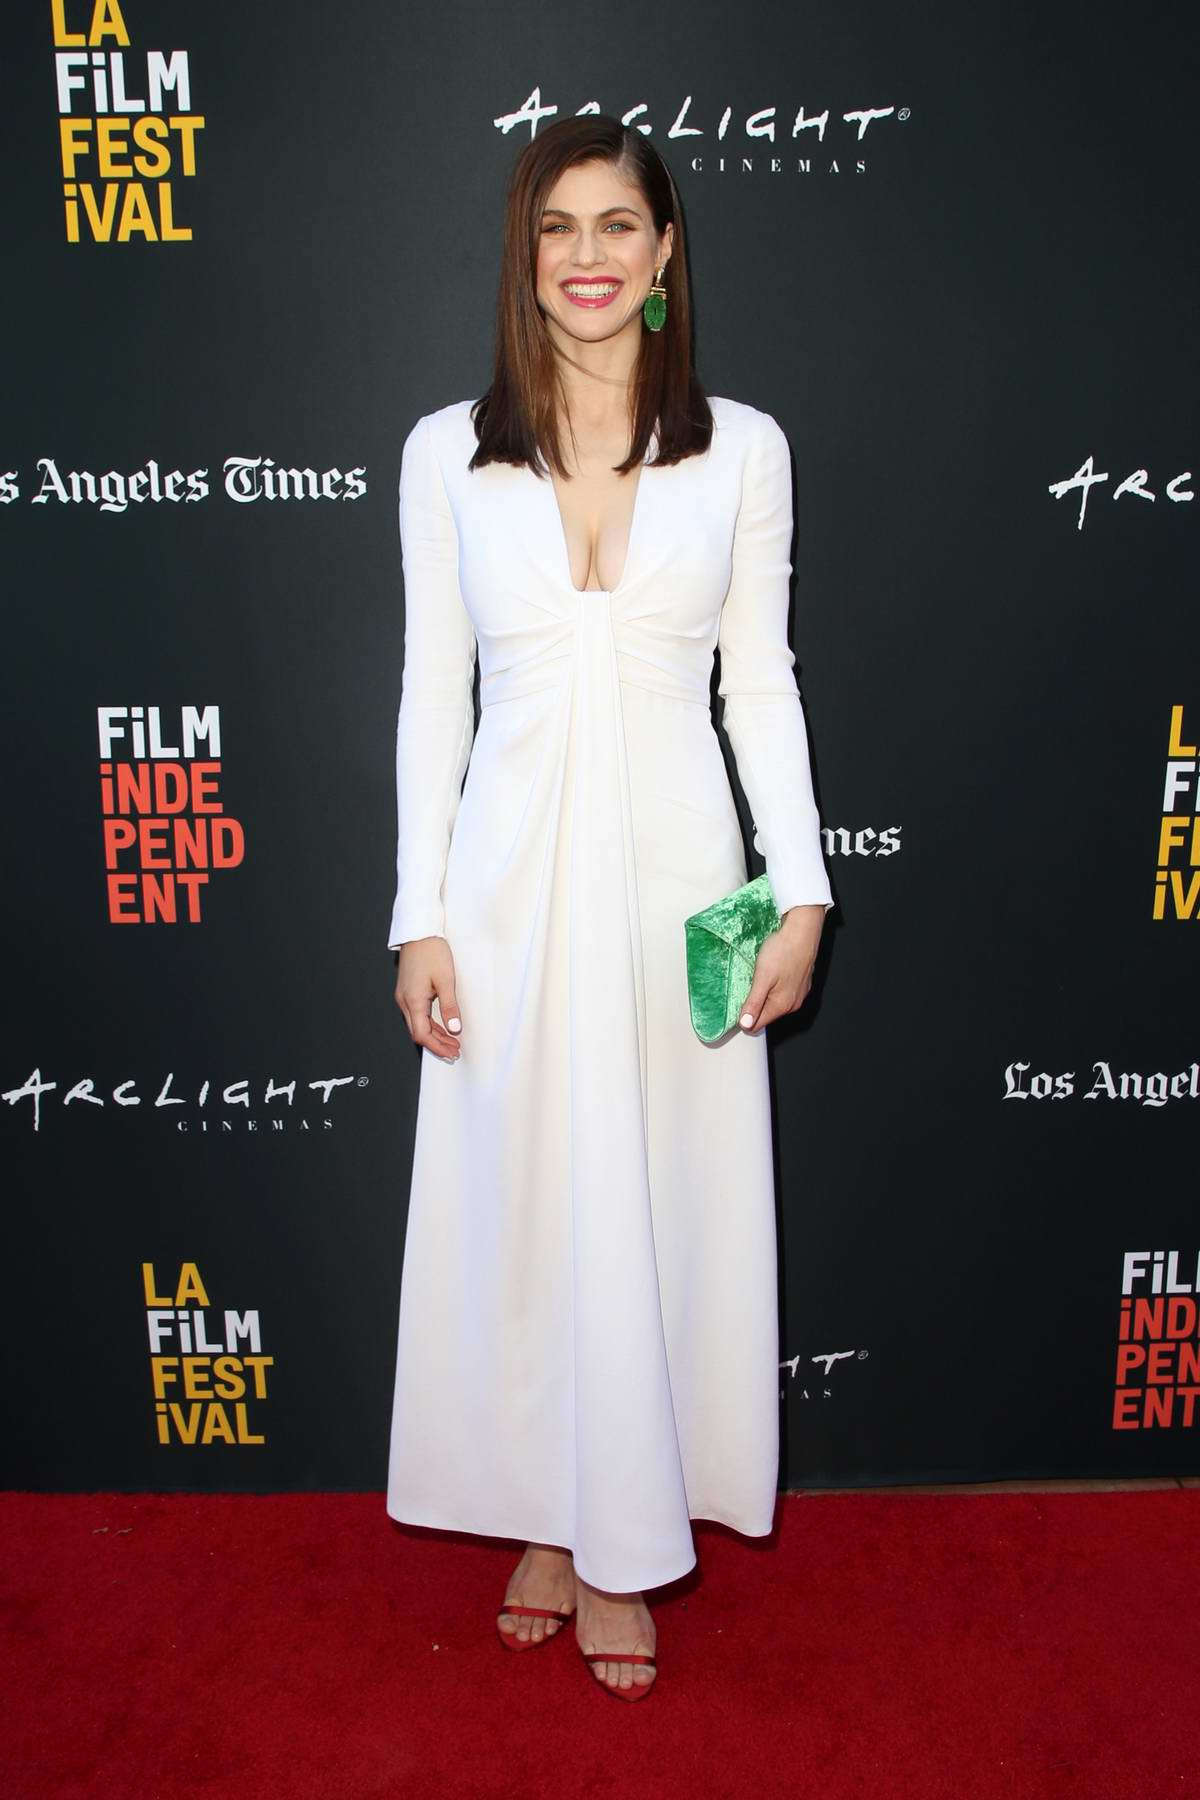 Alexandra Daddario attends 'We Have Always Lived In The Castle' premiere at LA Film Festival in Los Angeles